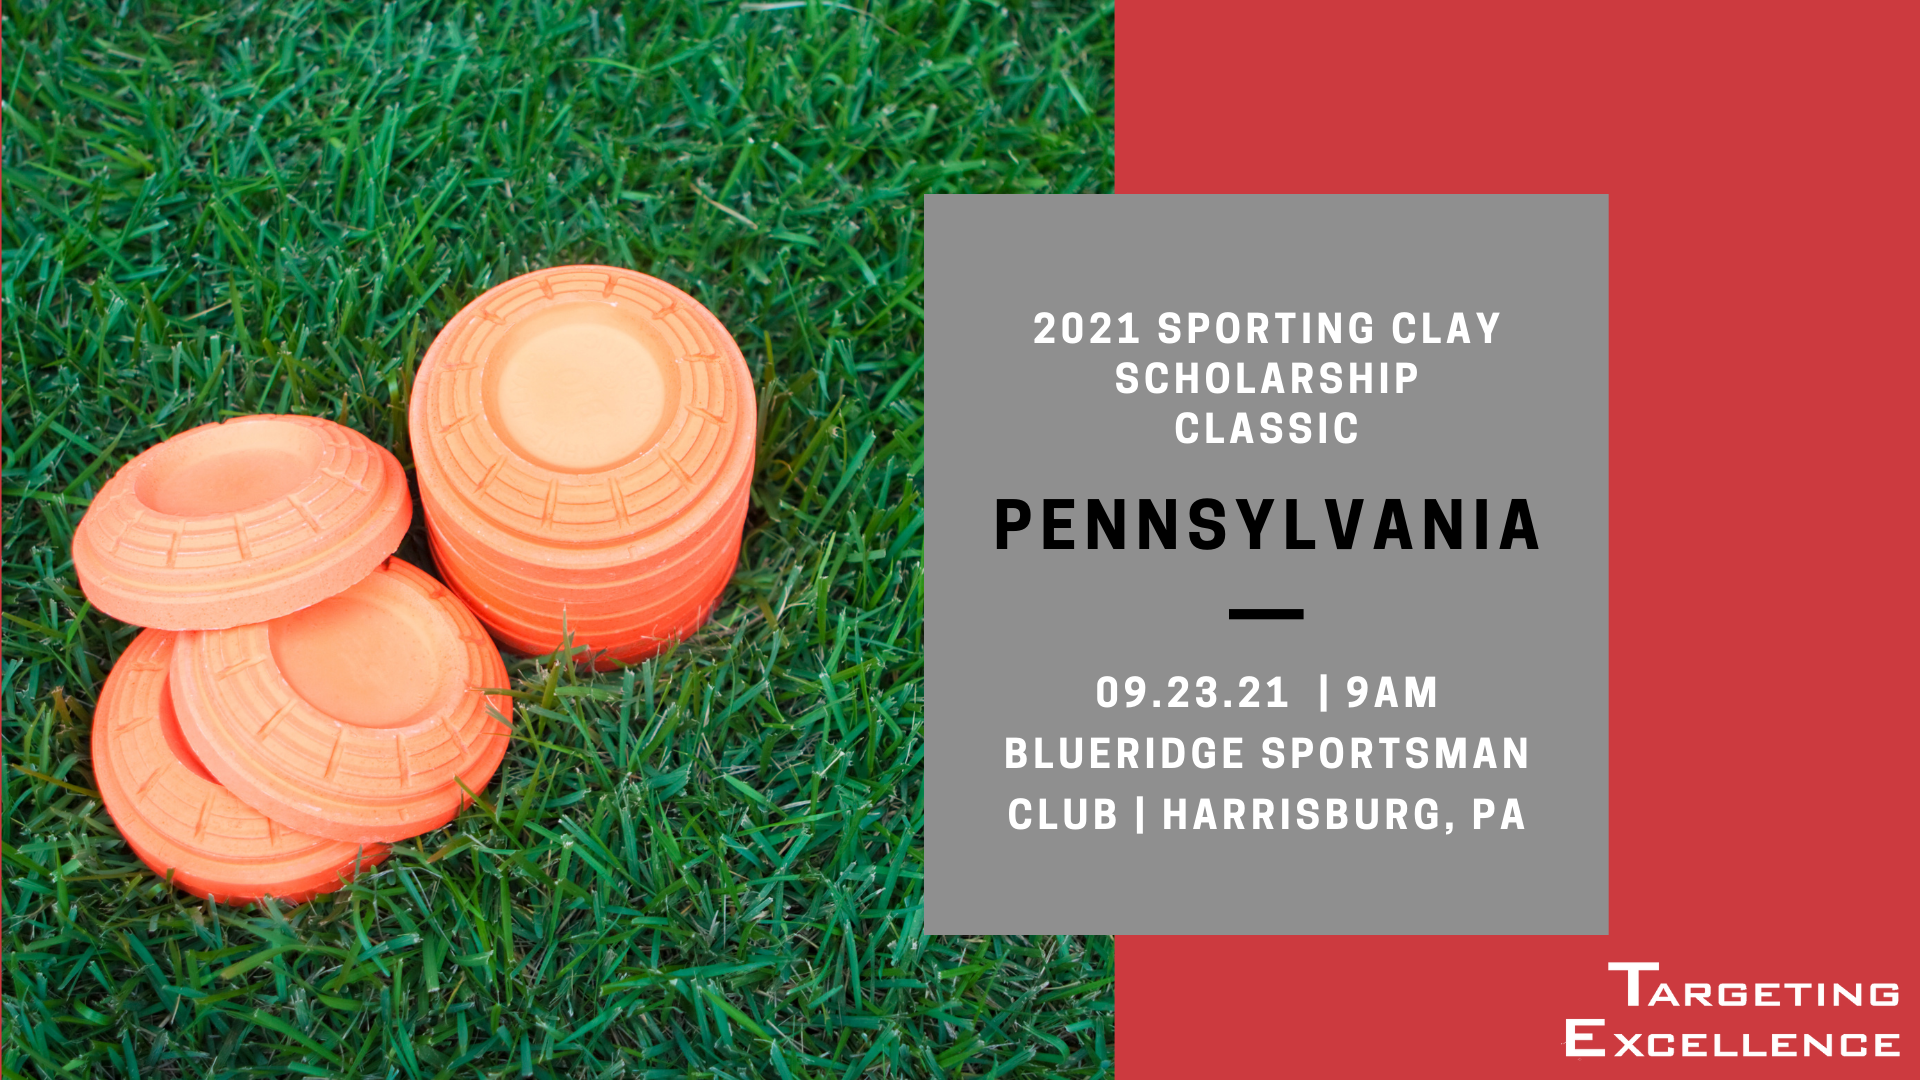 2021 Pennsylvania Targeting Excellence Sporting Clay Scholarship Classic